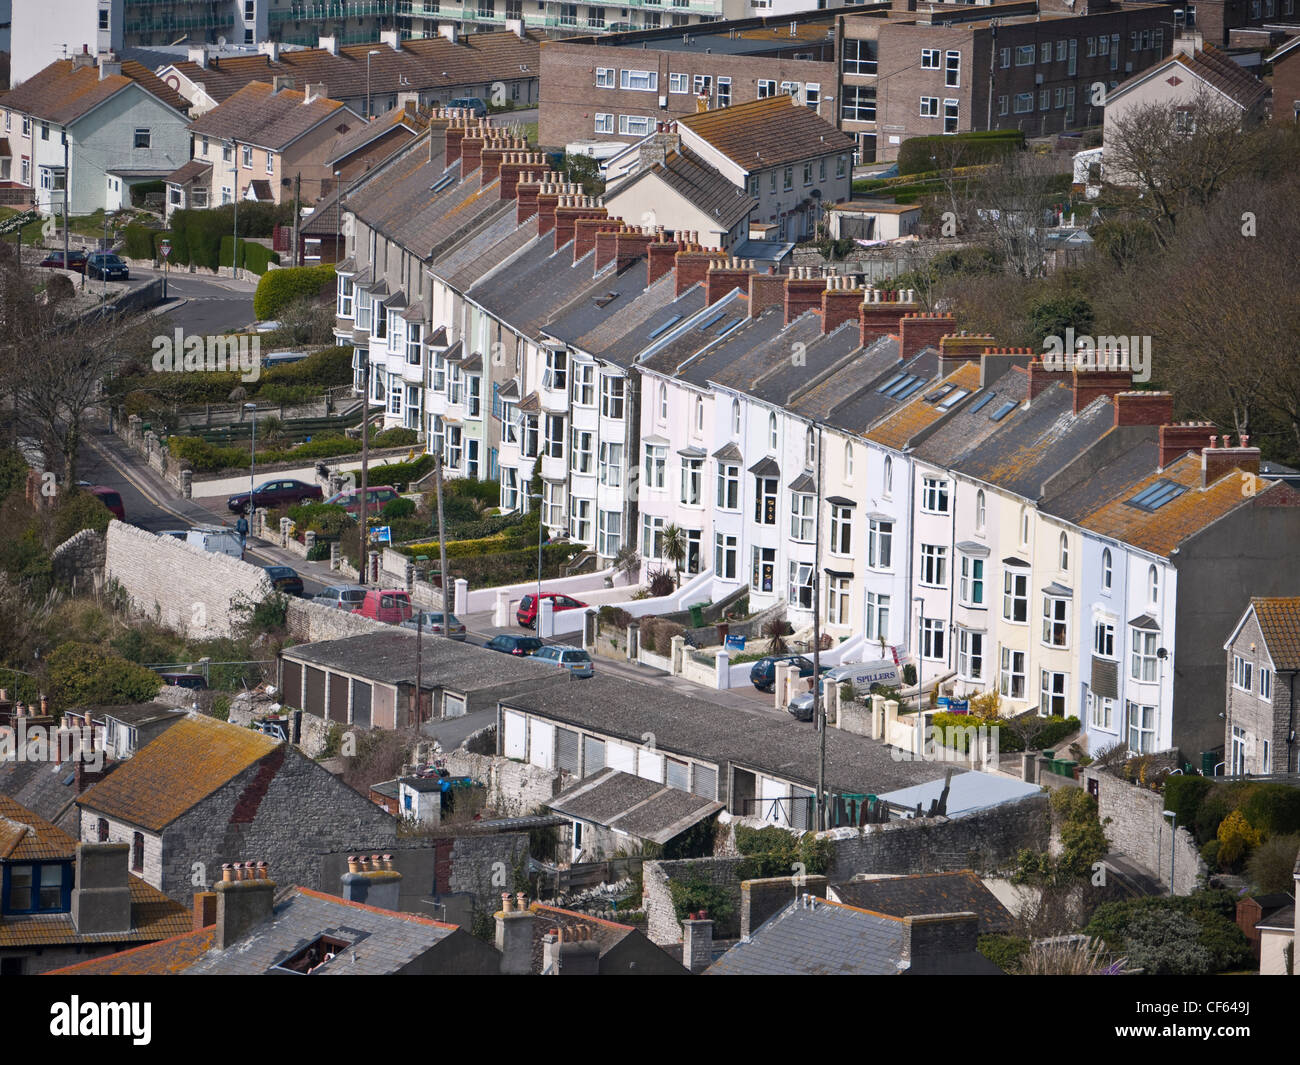 View over rooftops in the village of Fortuneswell, the gateway to the Isle of Portland. - Stock Image